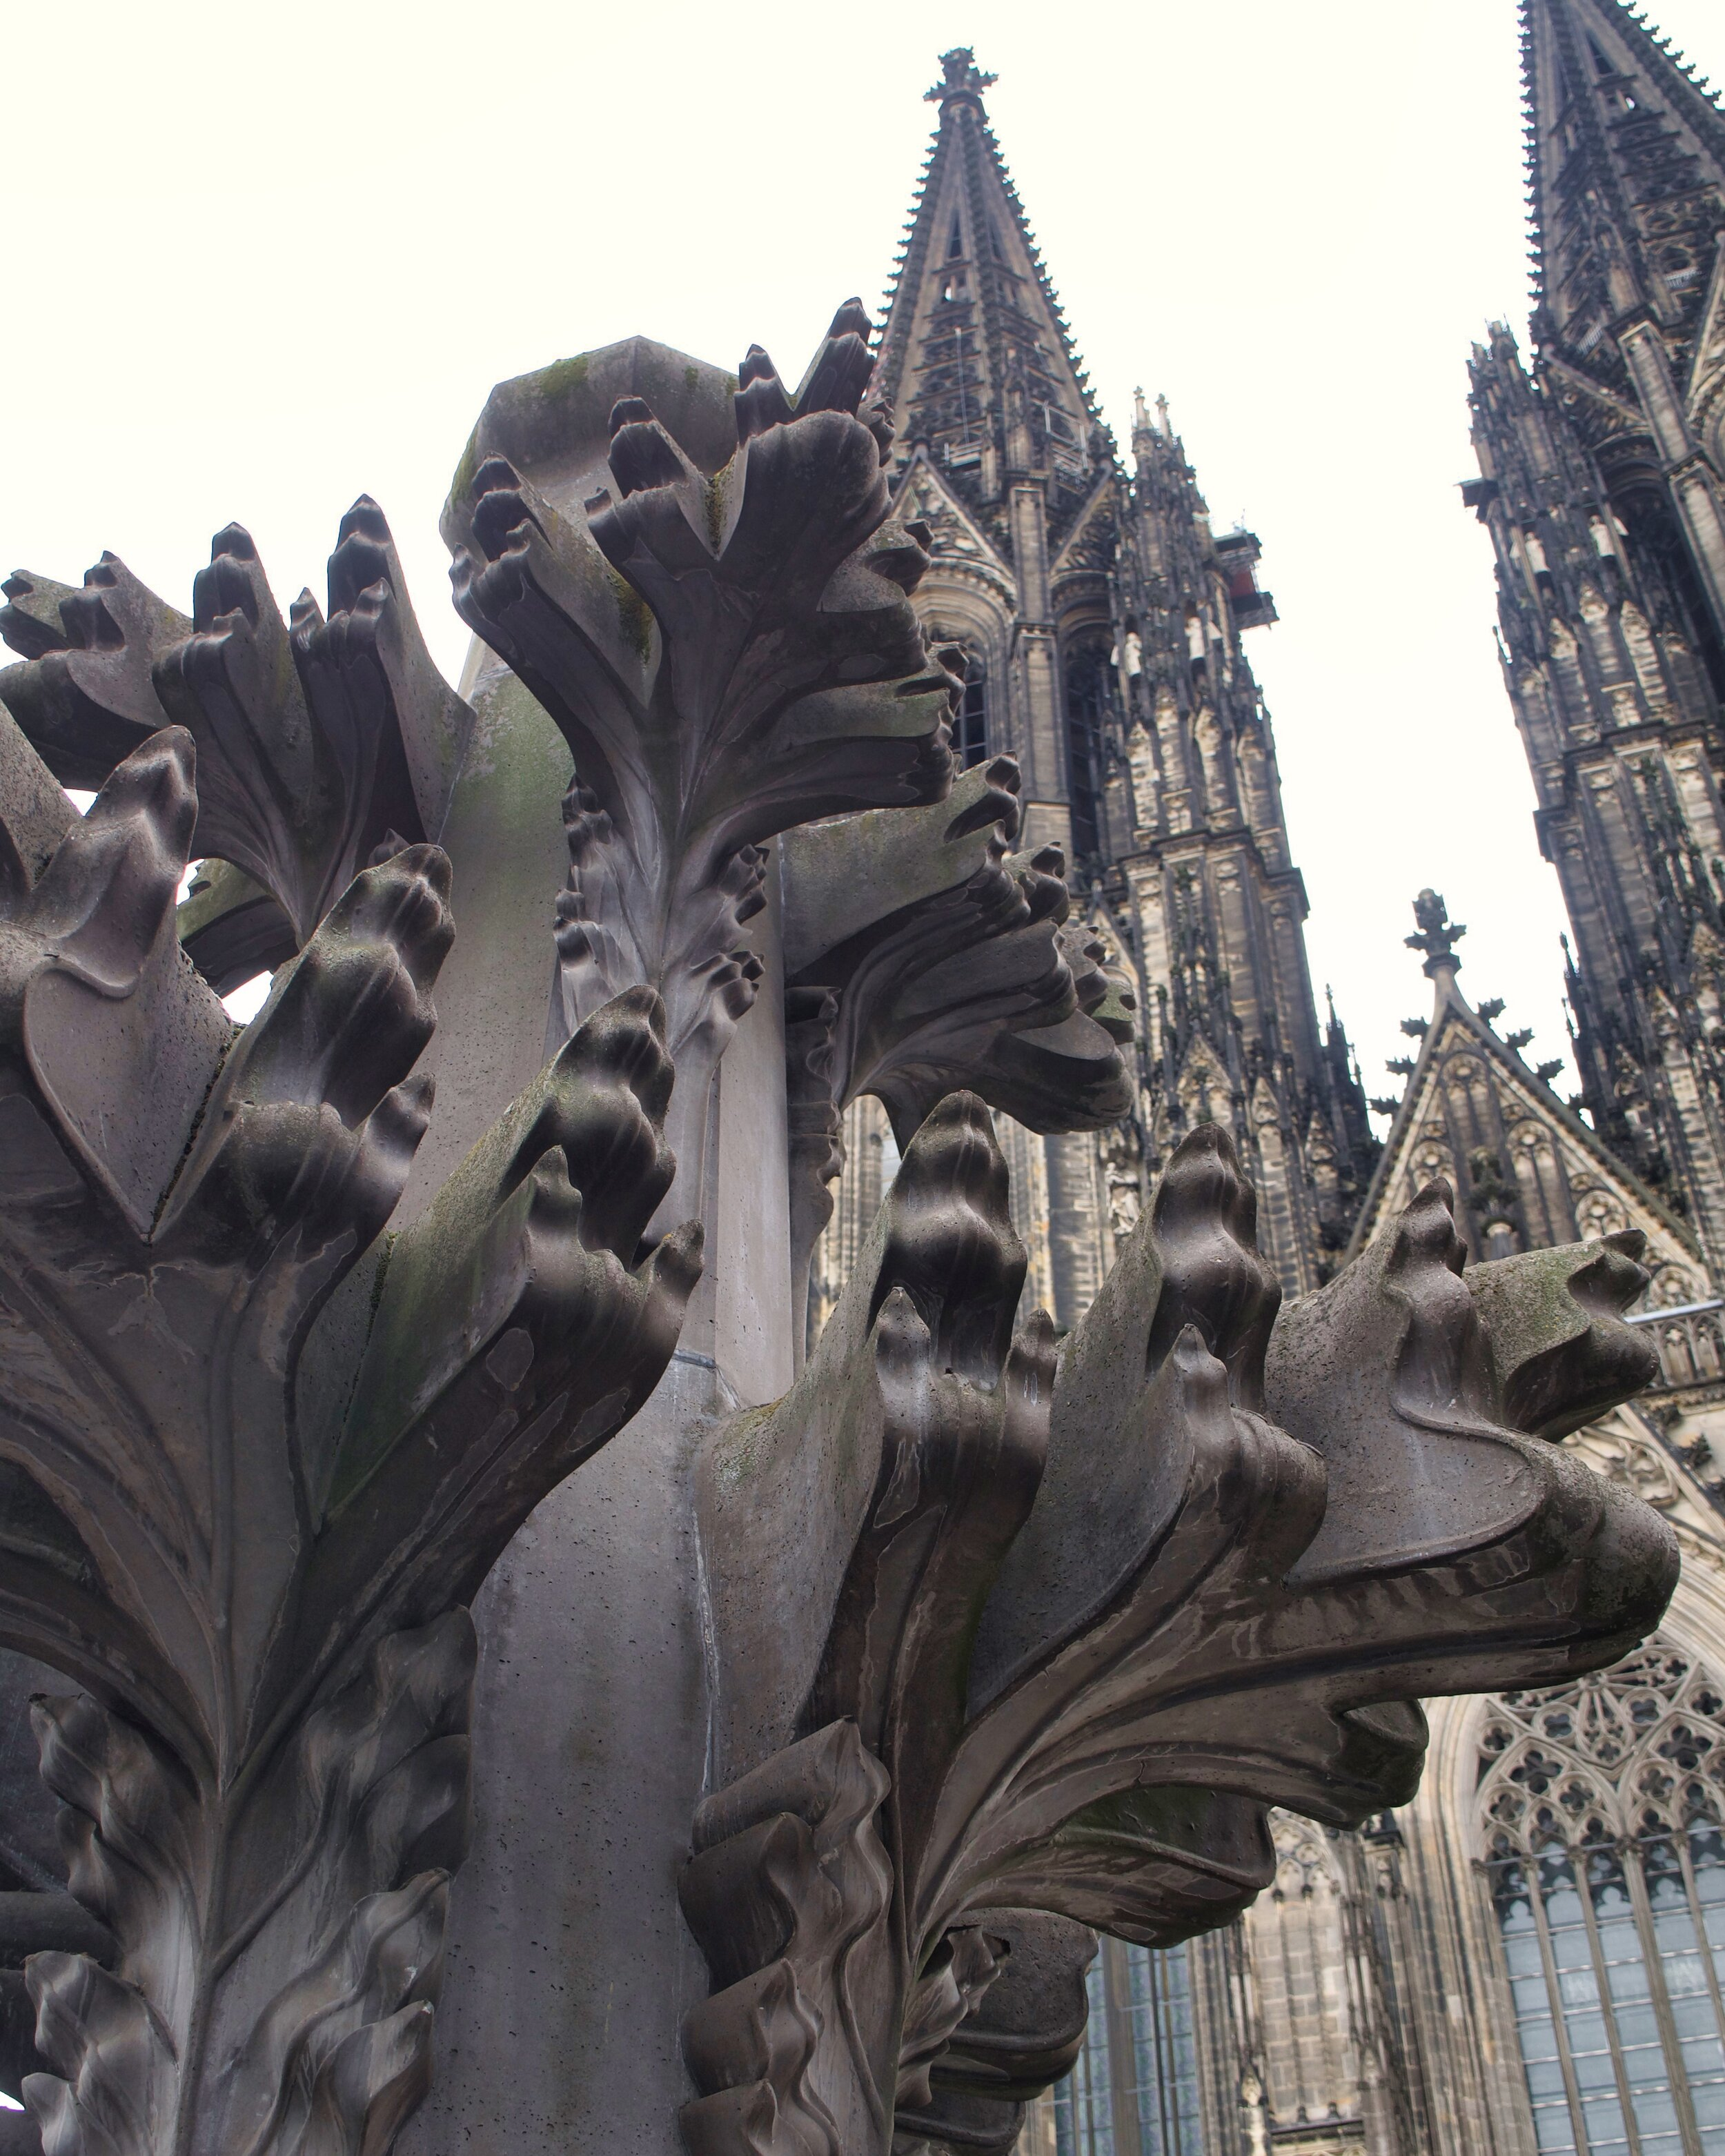 Replica of spire on the Cologne Cathedral